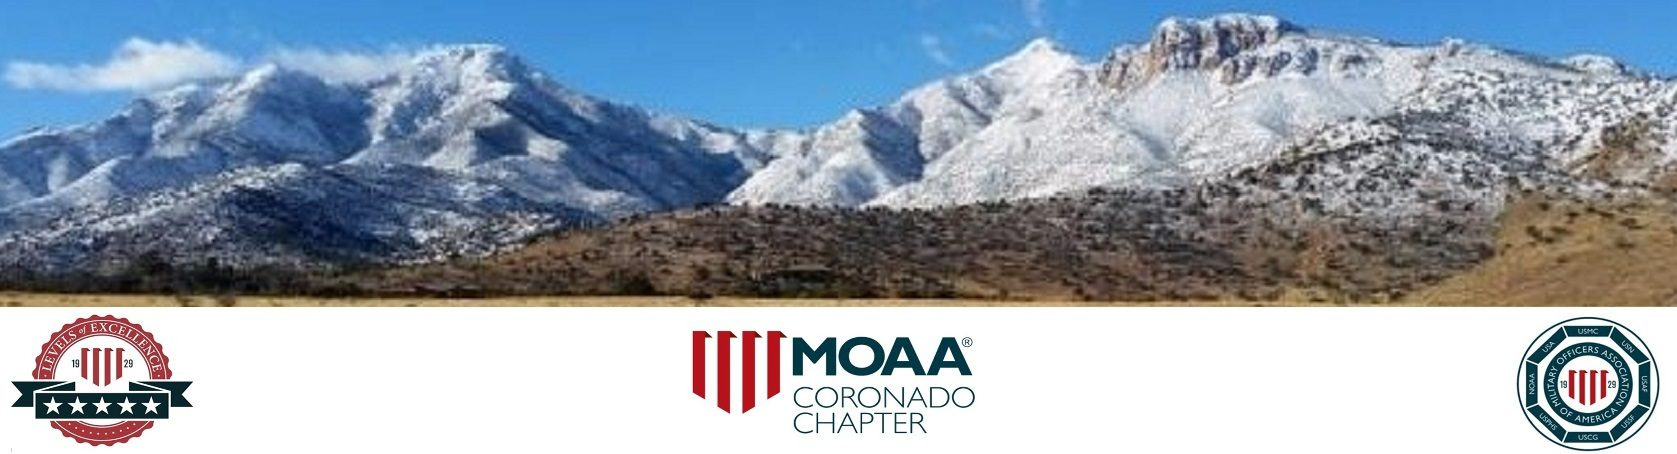 MOAA Coronado – MOAA 5 STAR LEVEL OF EXCELLENCE AWARD AND 5 STAR COMMUNICATIONS AWARD FOR 2019